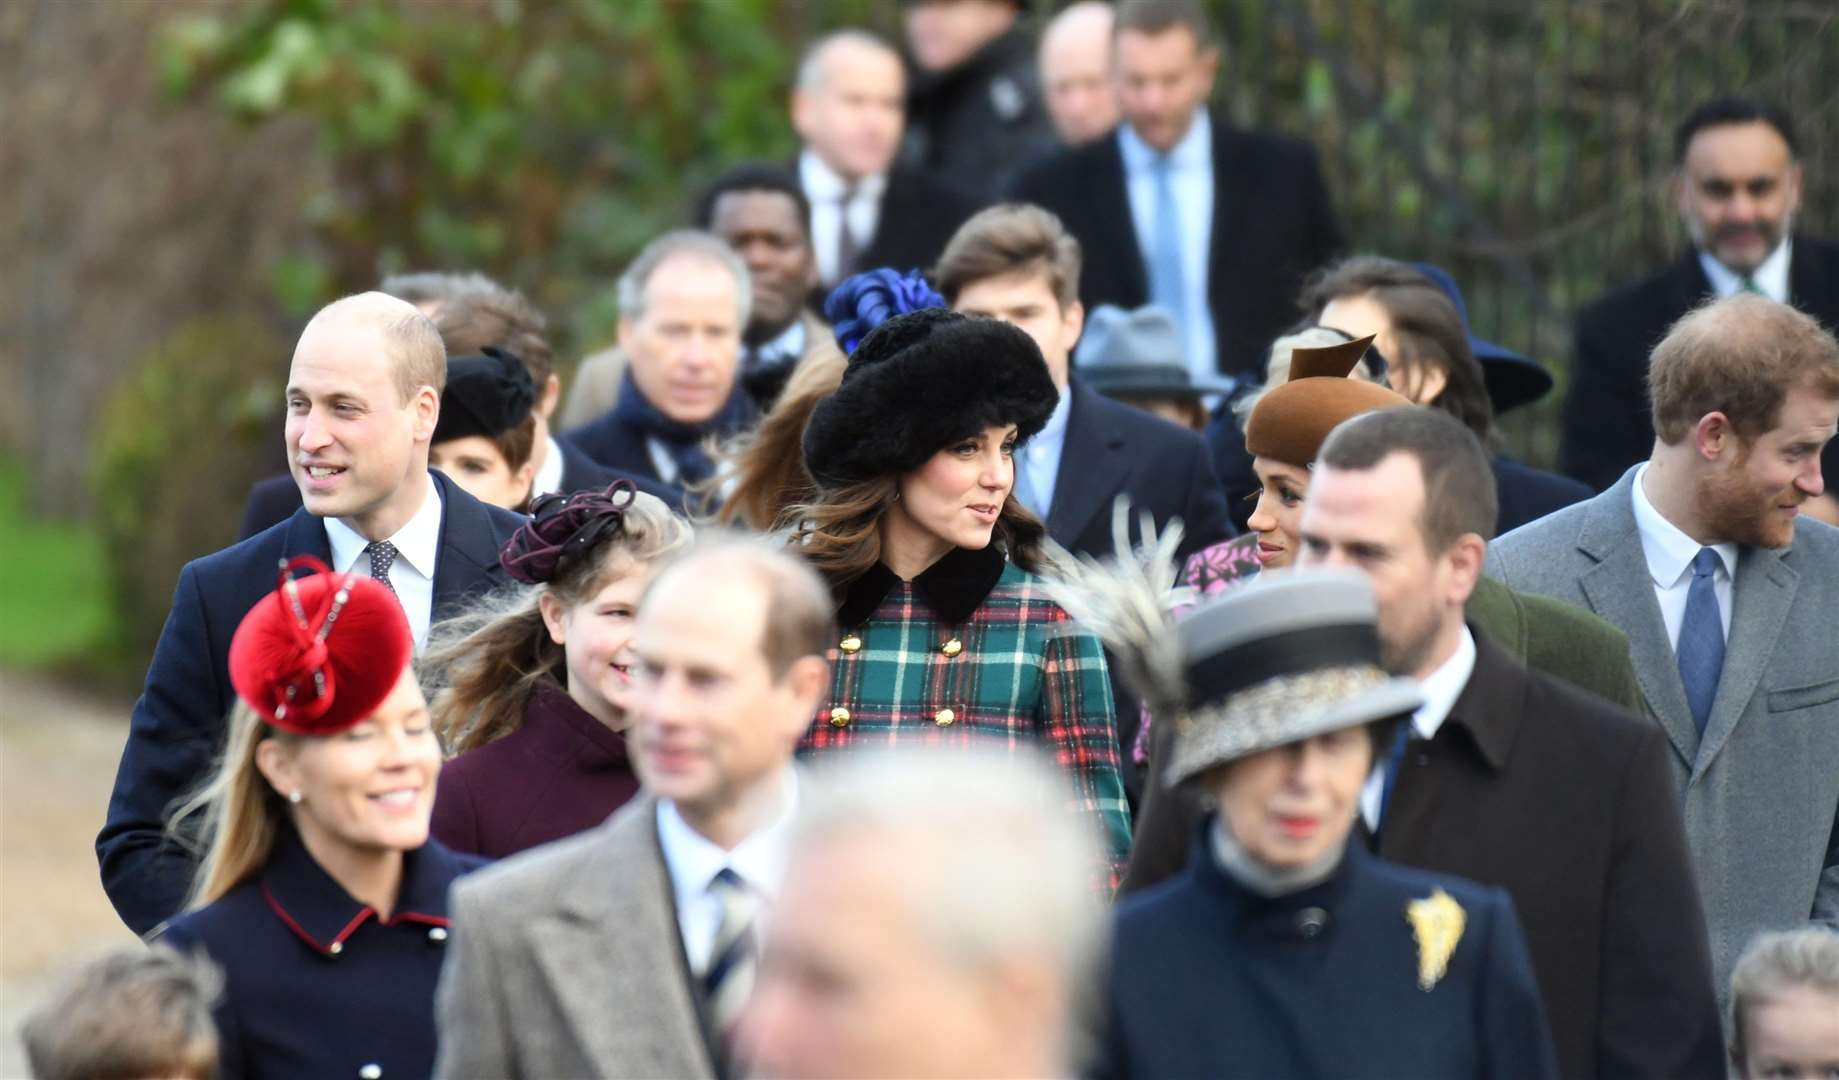 Members of the Royal Family at Sandringham for the Christmas Day service in 2017.